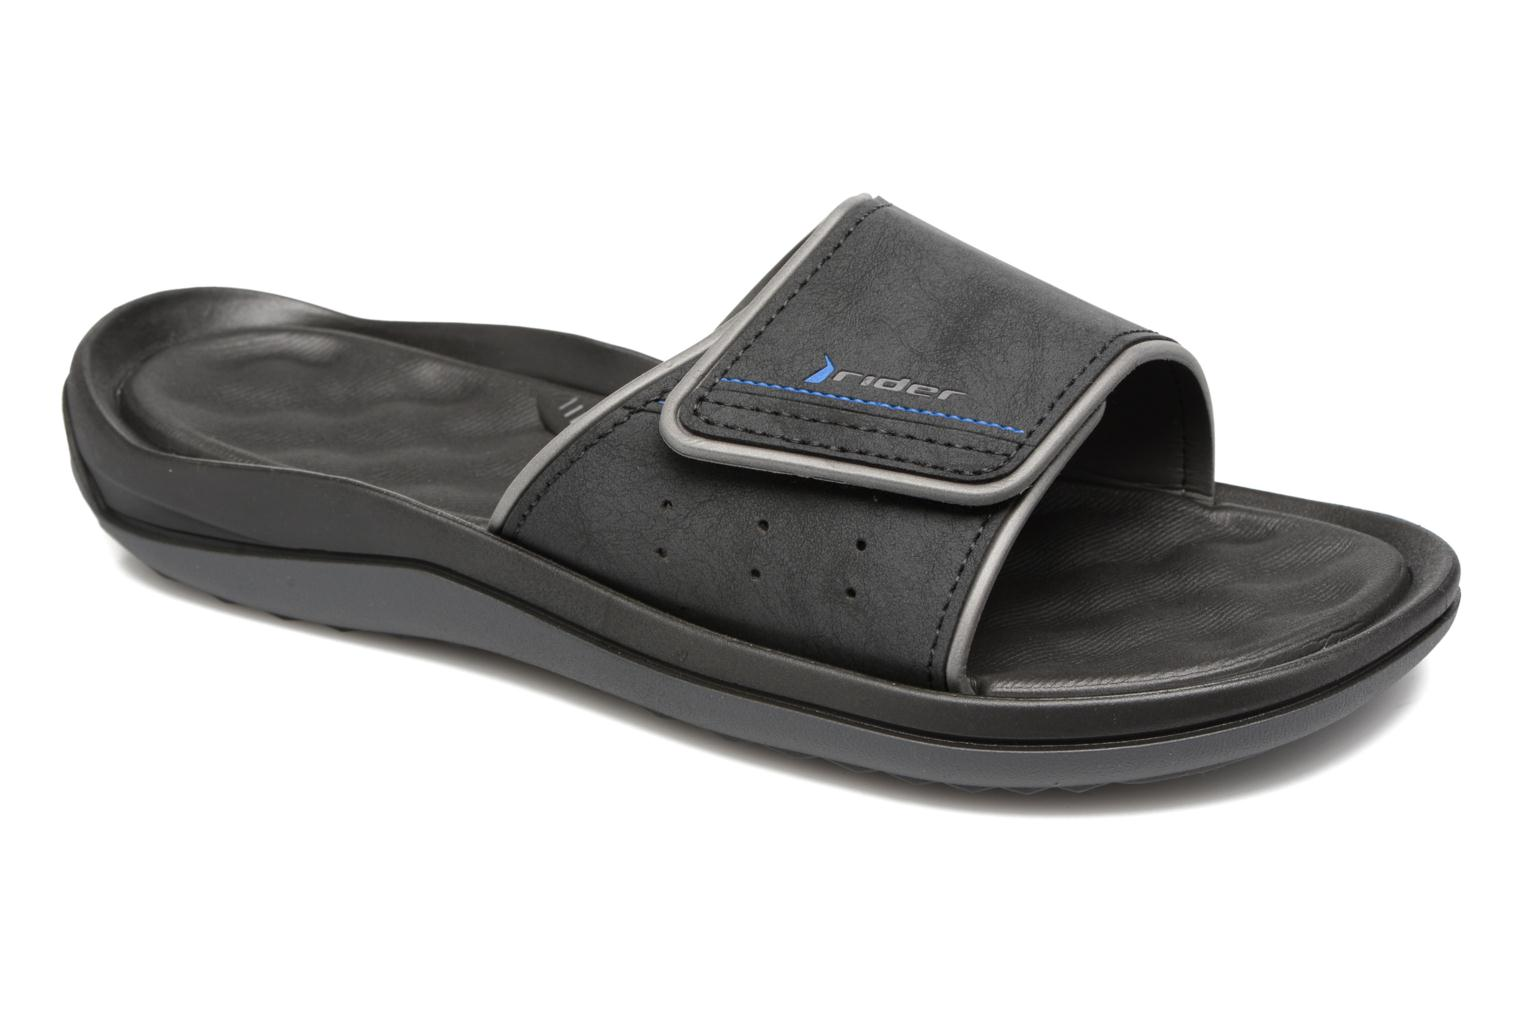 Dunas evolution slide Black/black